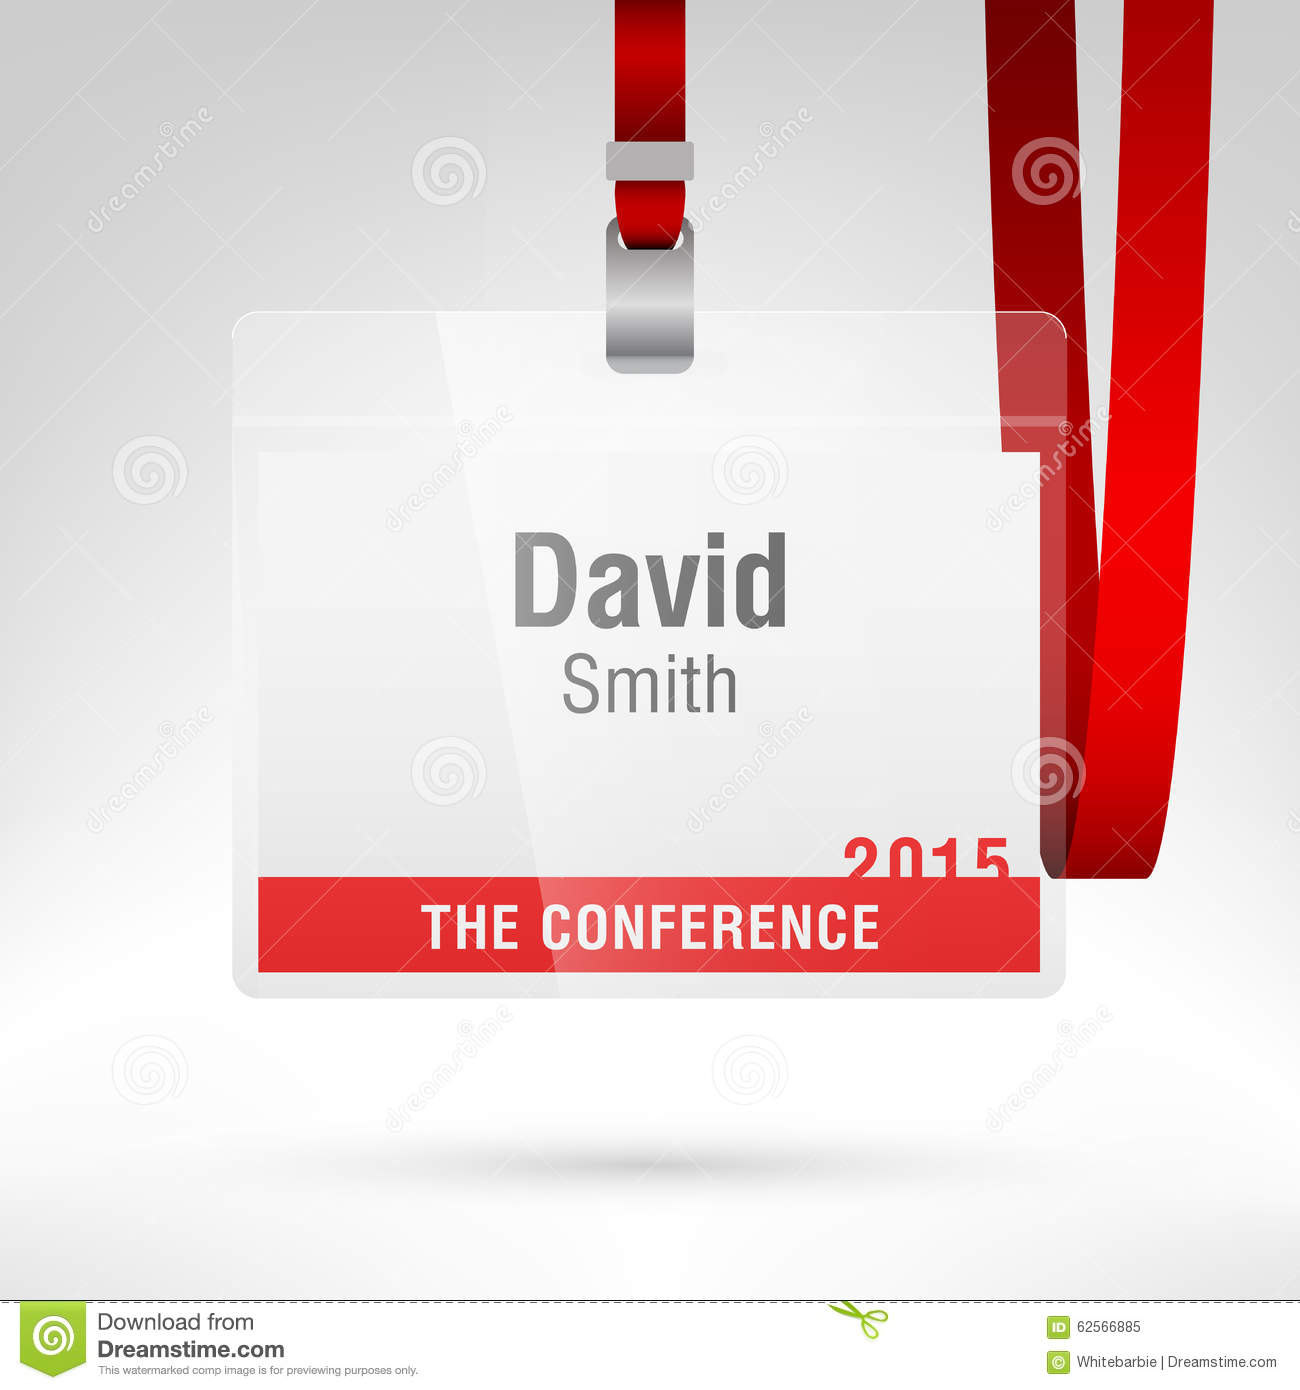 Conference Badge Stock Vector Illustration Of Template - Conference badge template